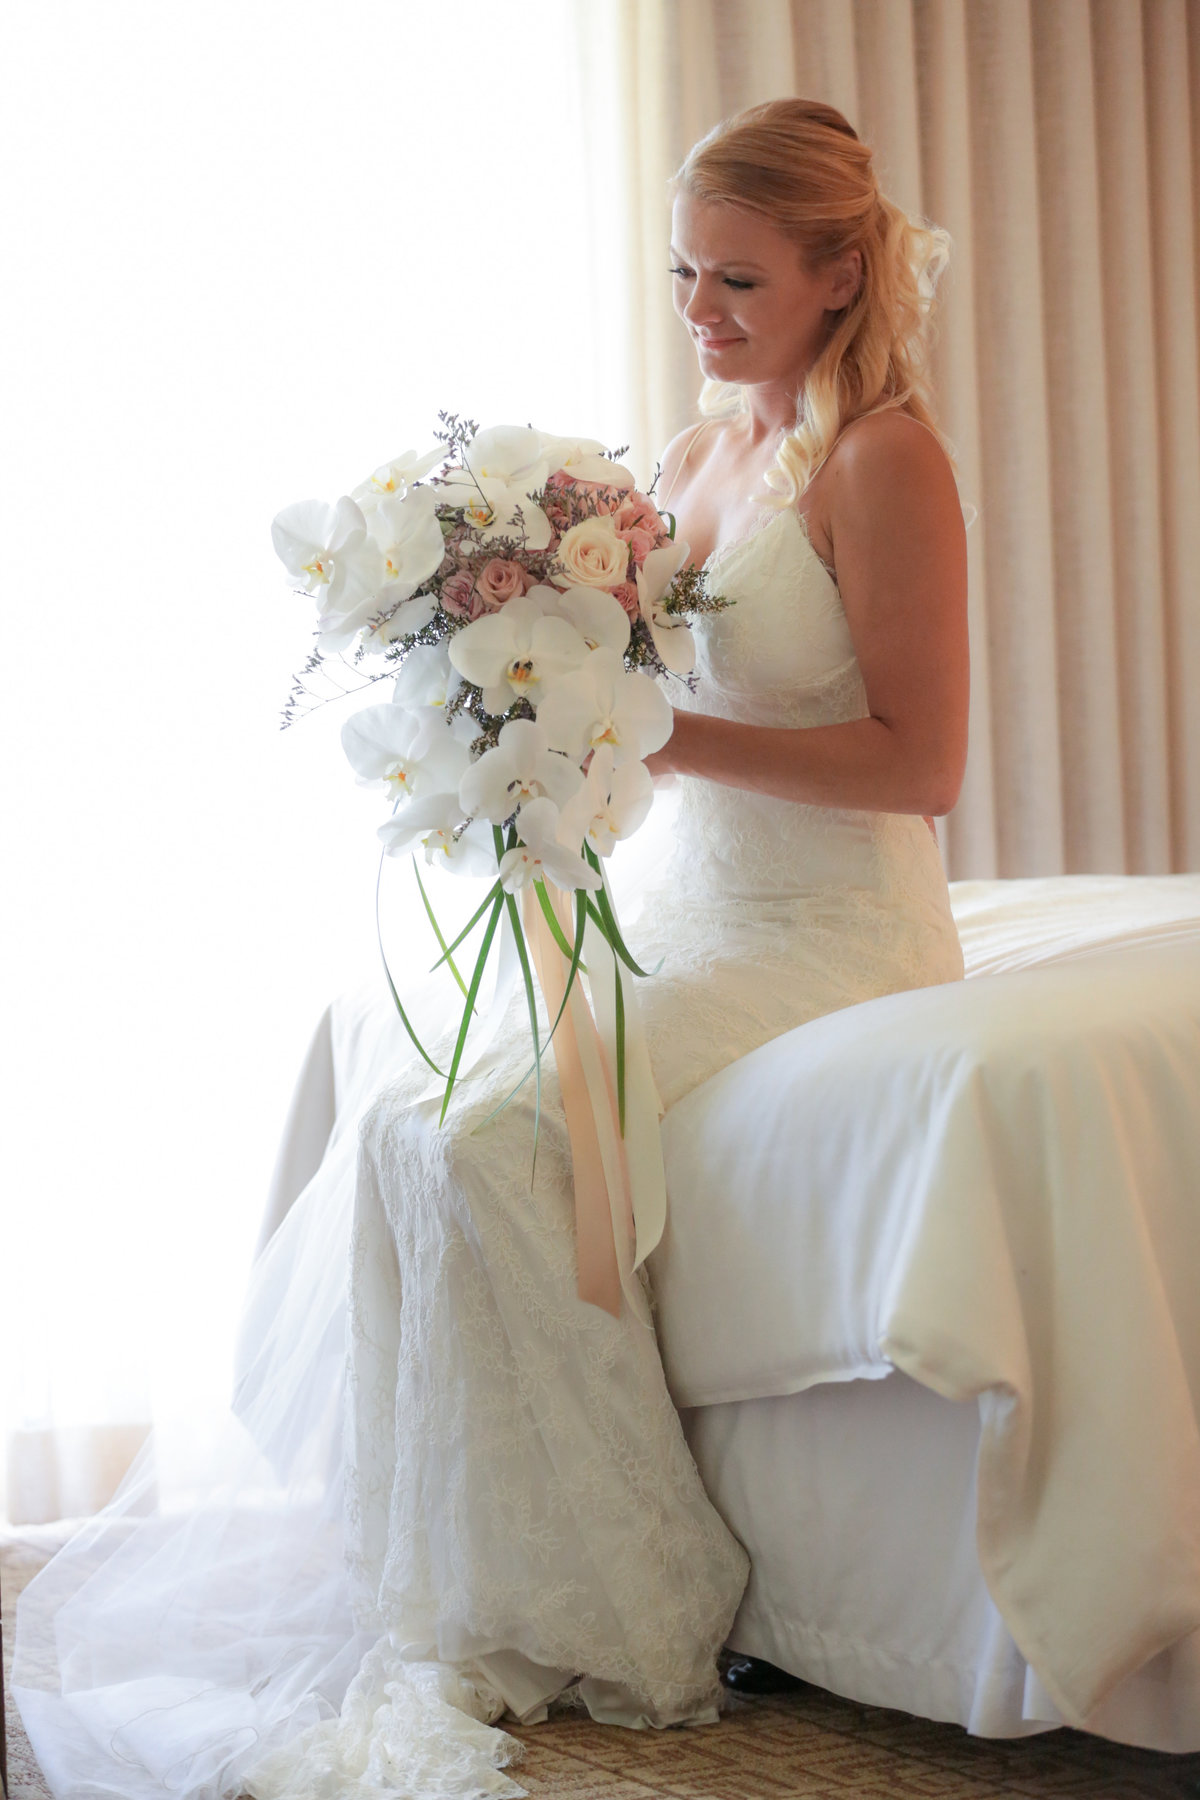 Bradenton-Sarasota Wedding Photography of the bride with her bouquet